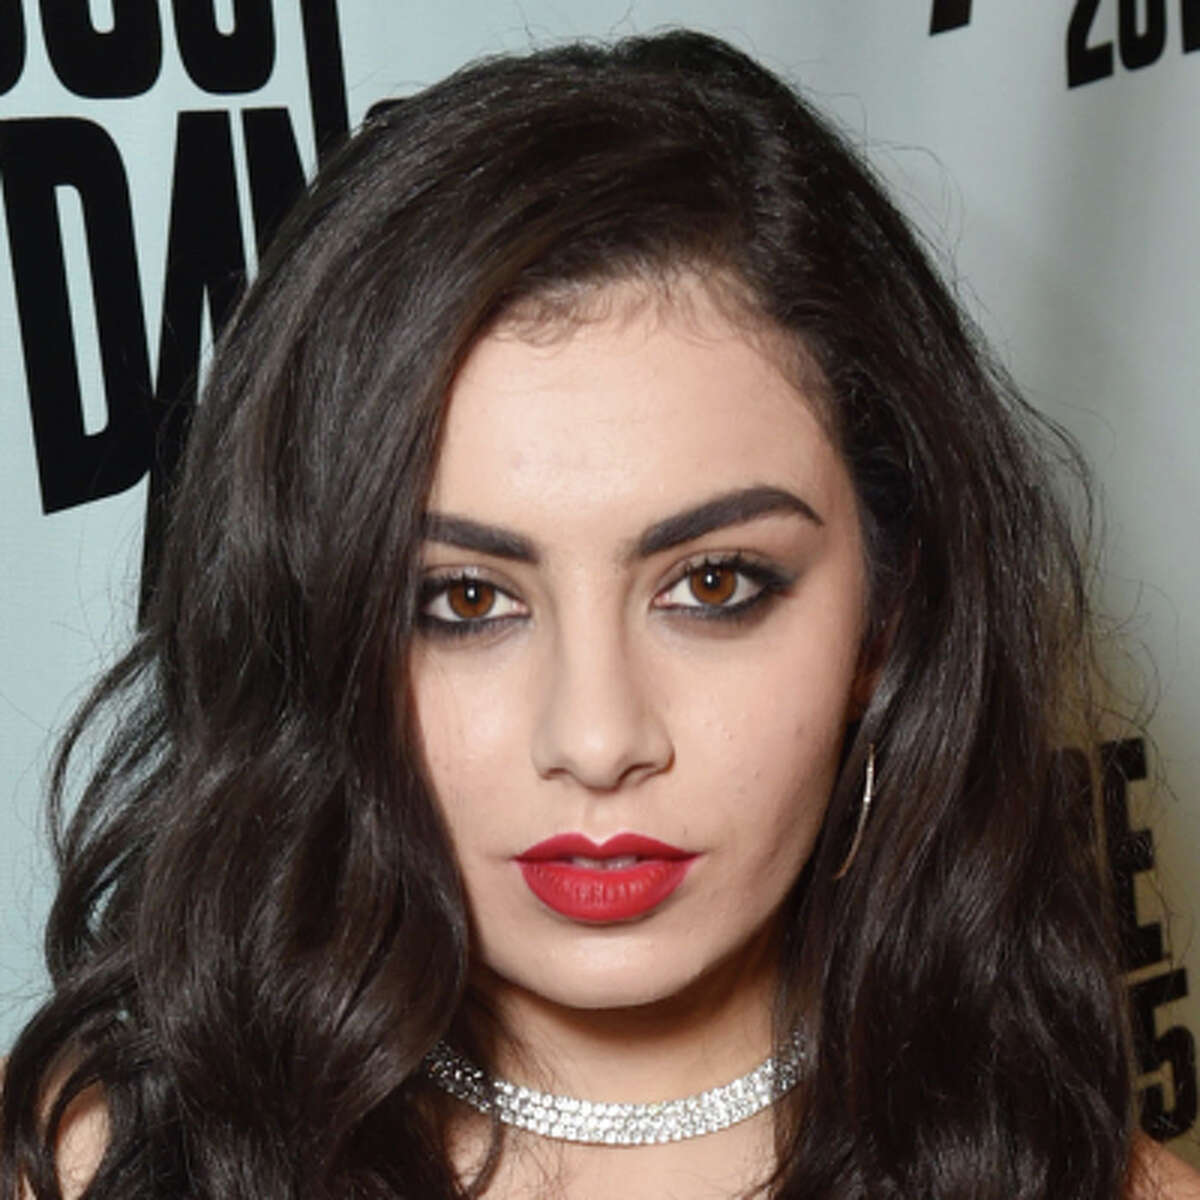 Charli XCX turned to Union Square's Johnny Bueno to style her hair while in S.F. to perform a sold-out show at Slim's on Oct. 25.